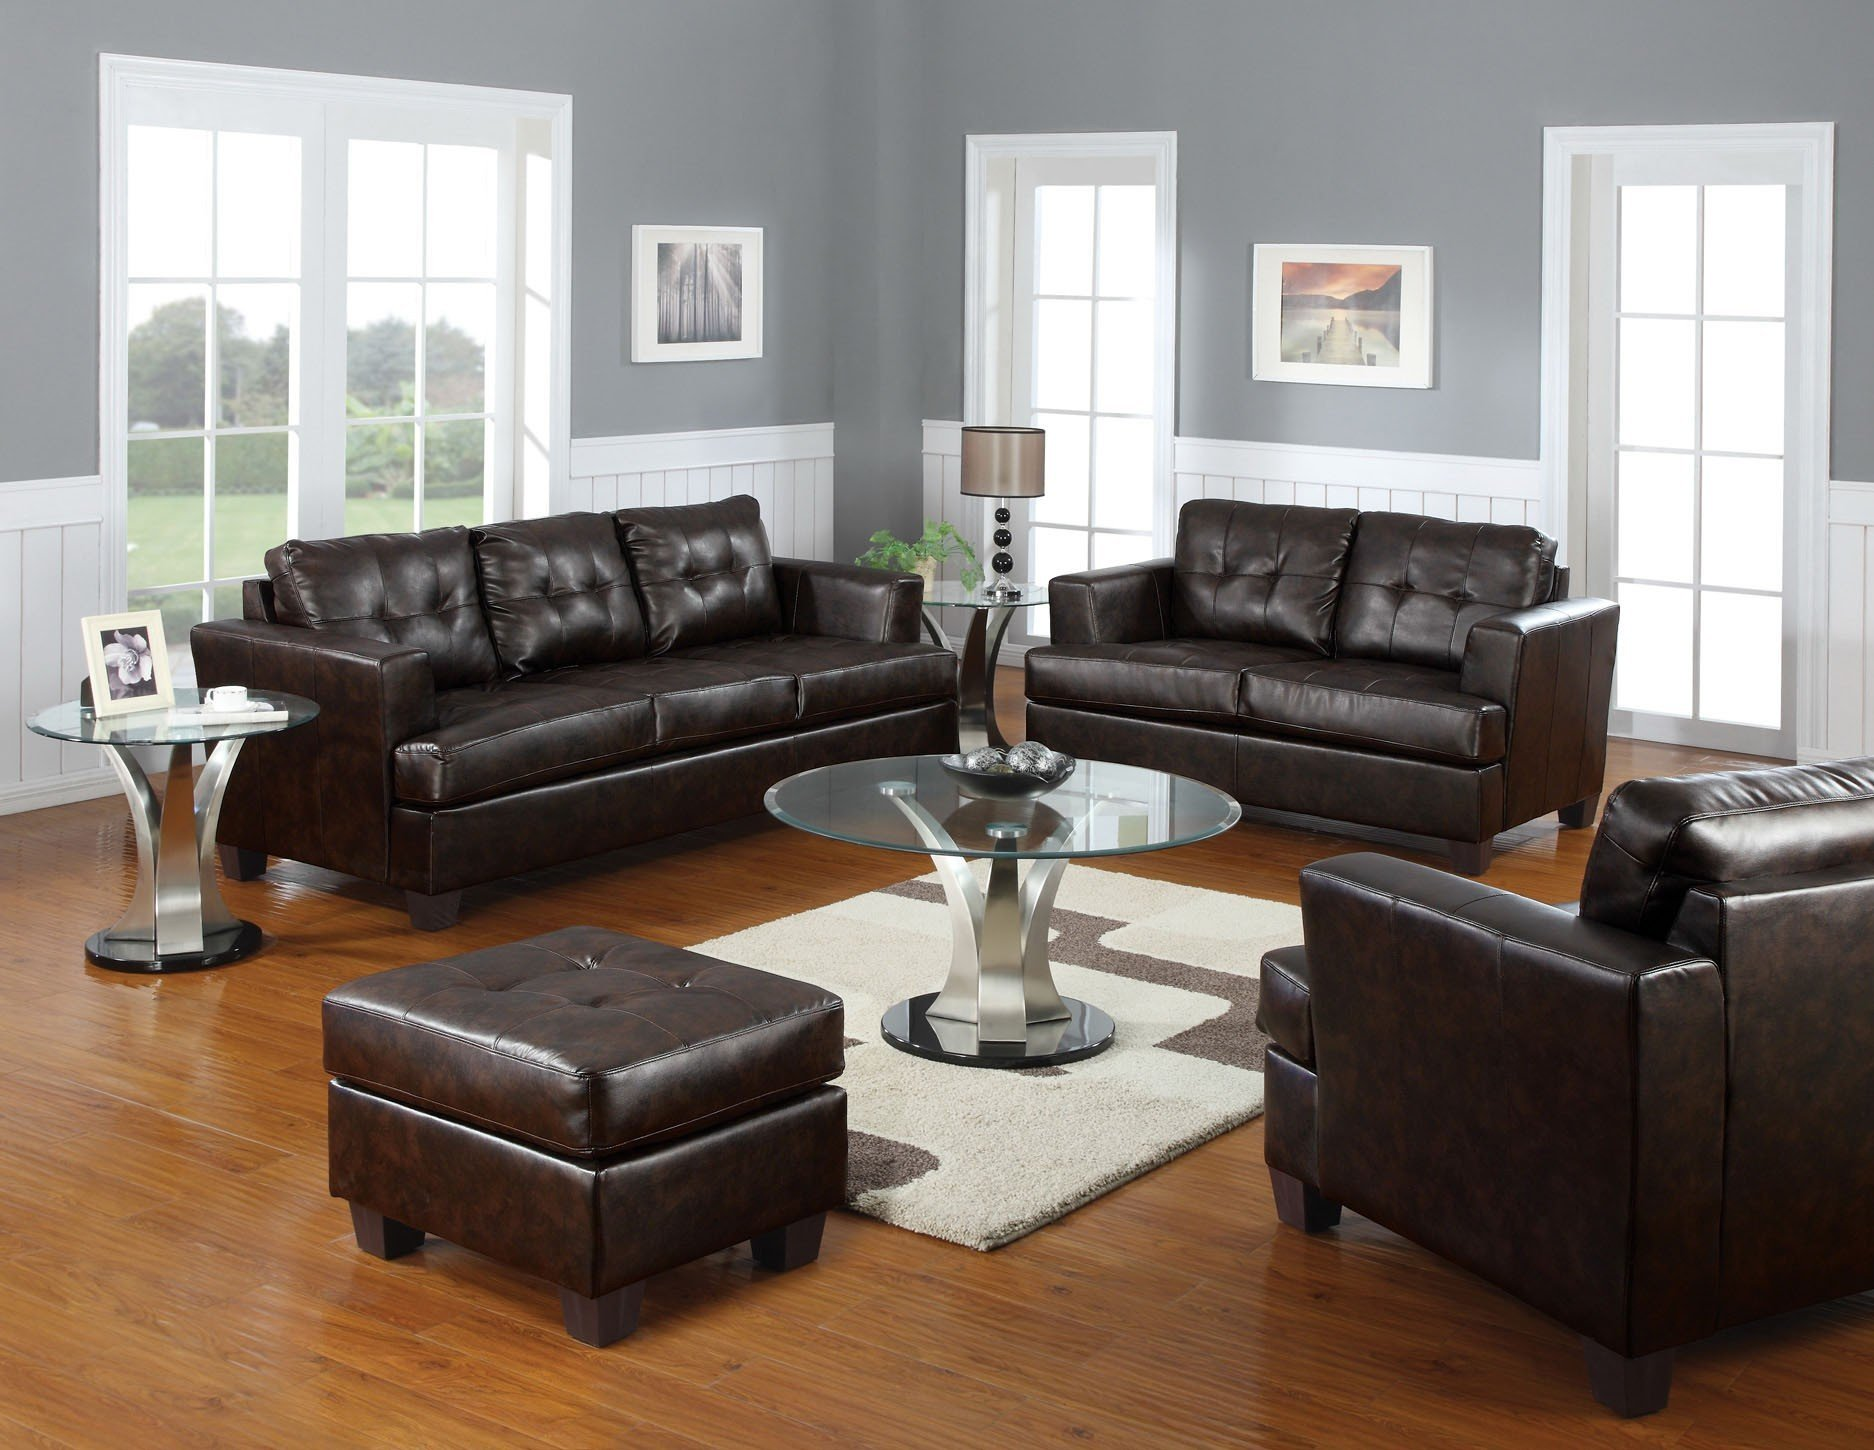 Astounding Platinum Living Room Set Brown Home Interior And Landscaping Ponolsignezvosmurscom